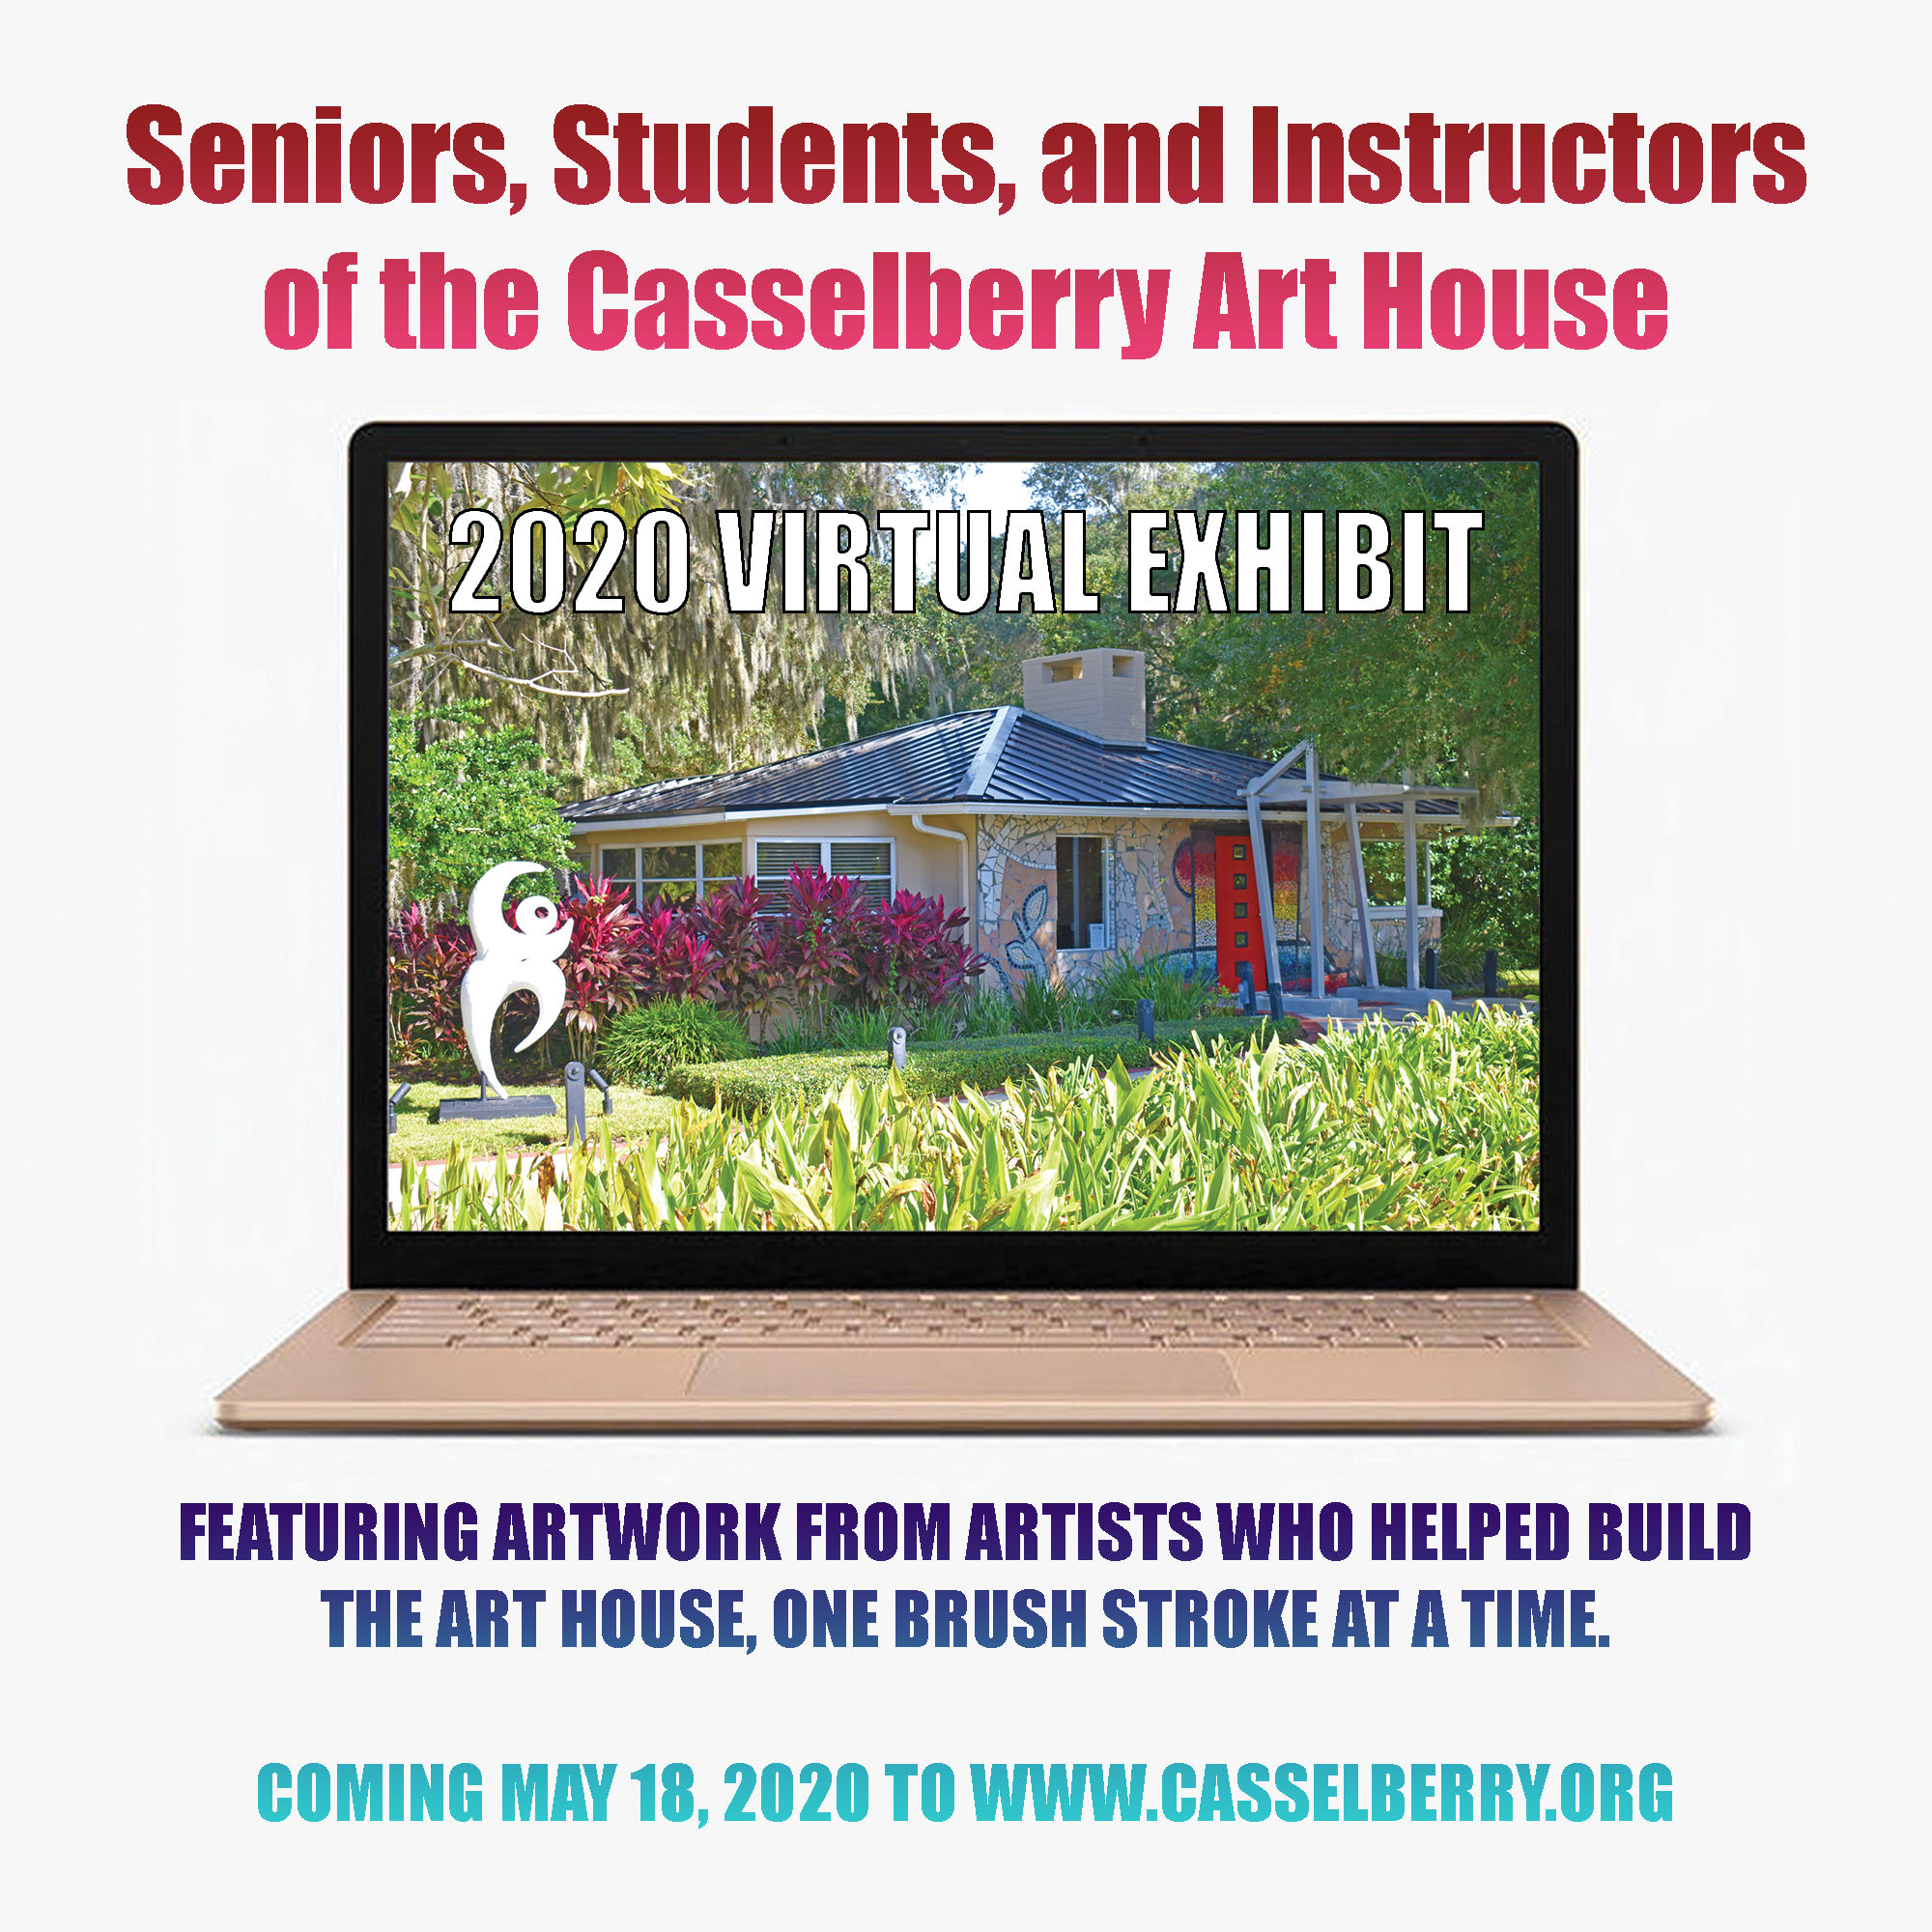 Seniors, Students, and Instructors of the Art House graphic